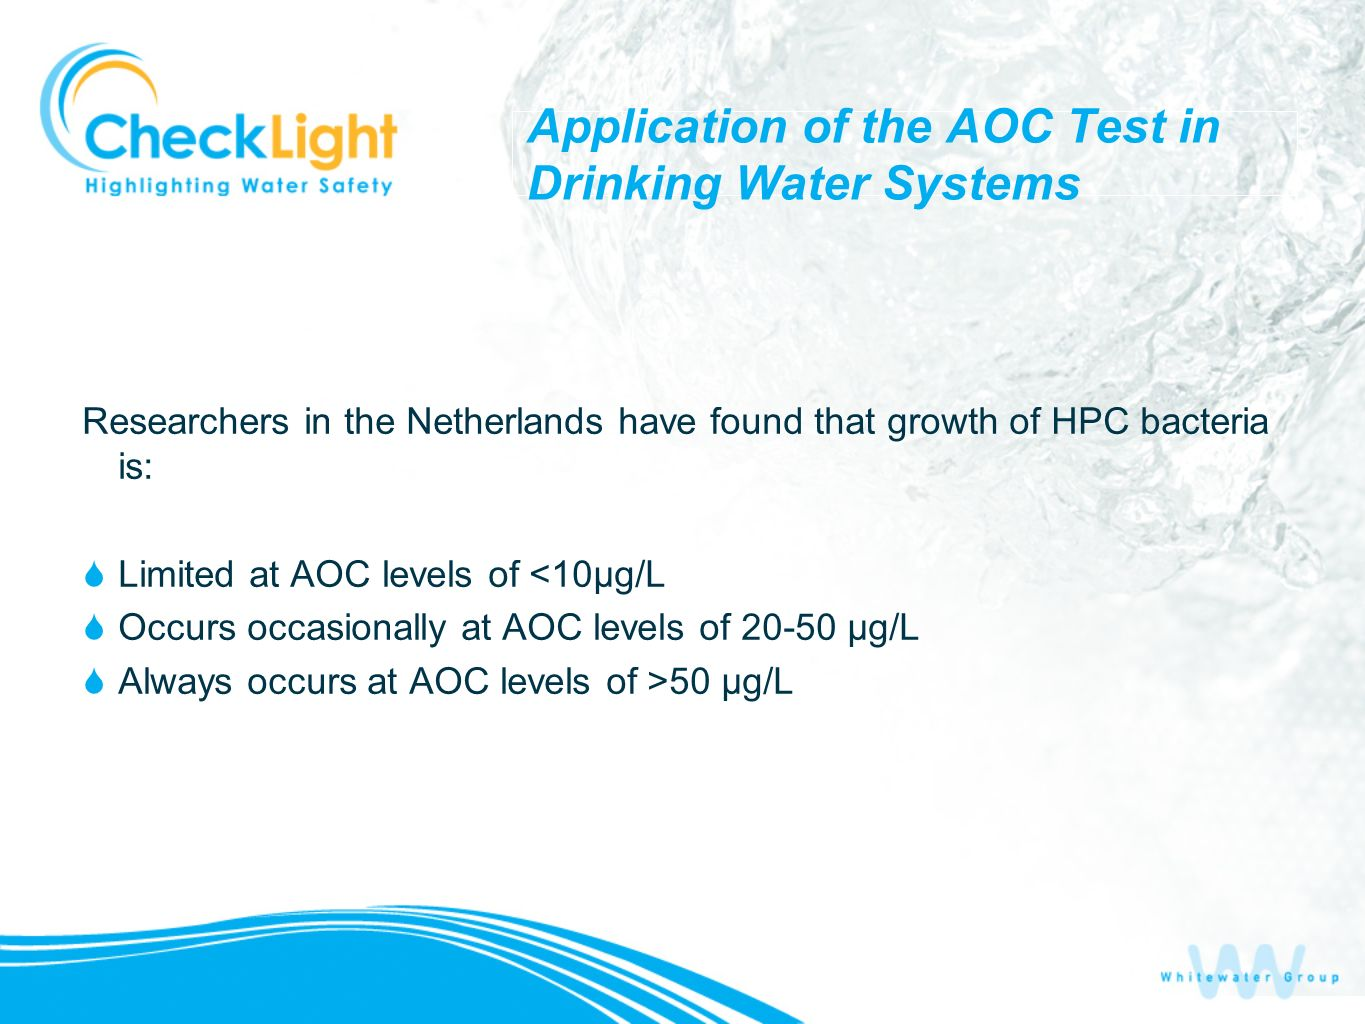 Application of the AOC Test in Drinking Water Systems